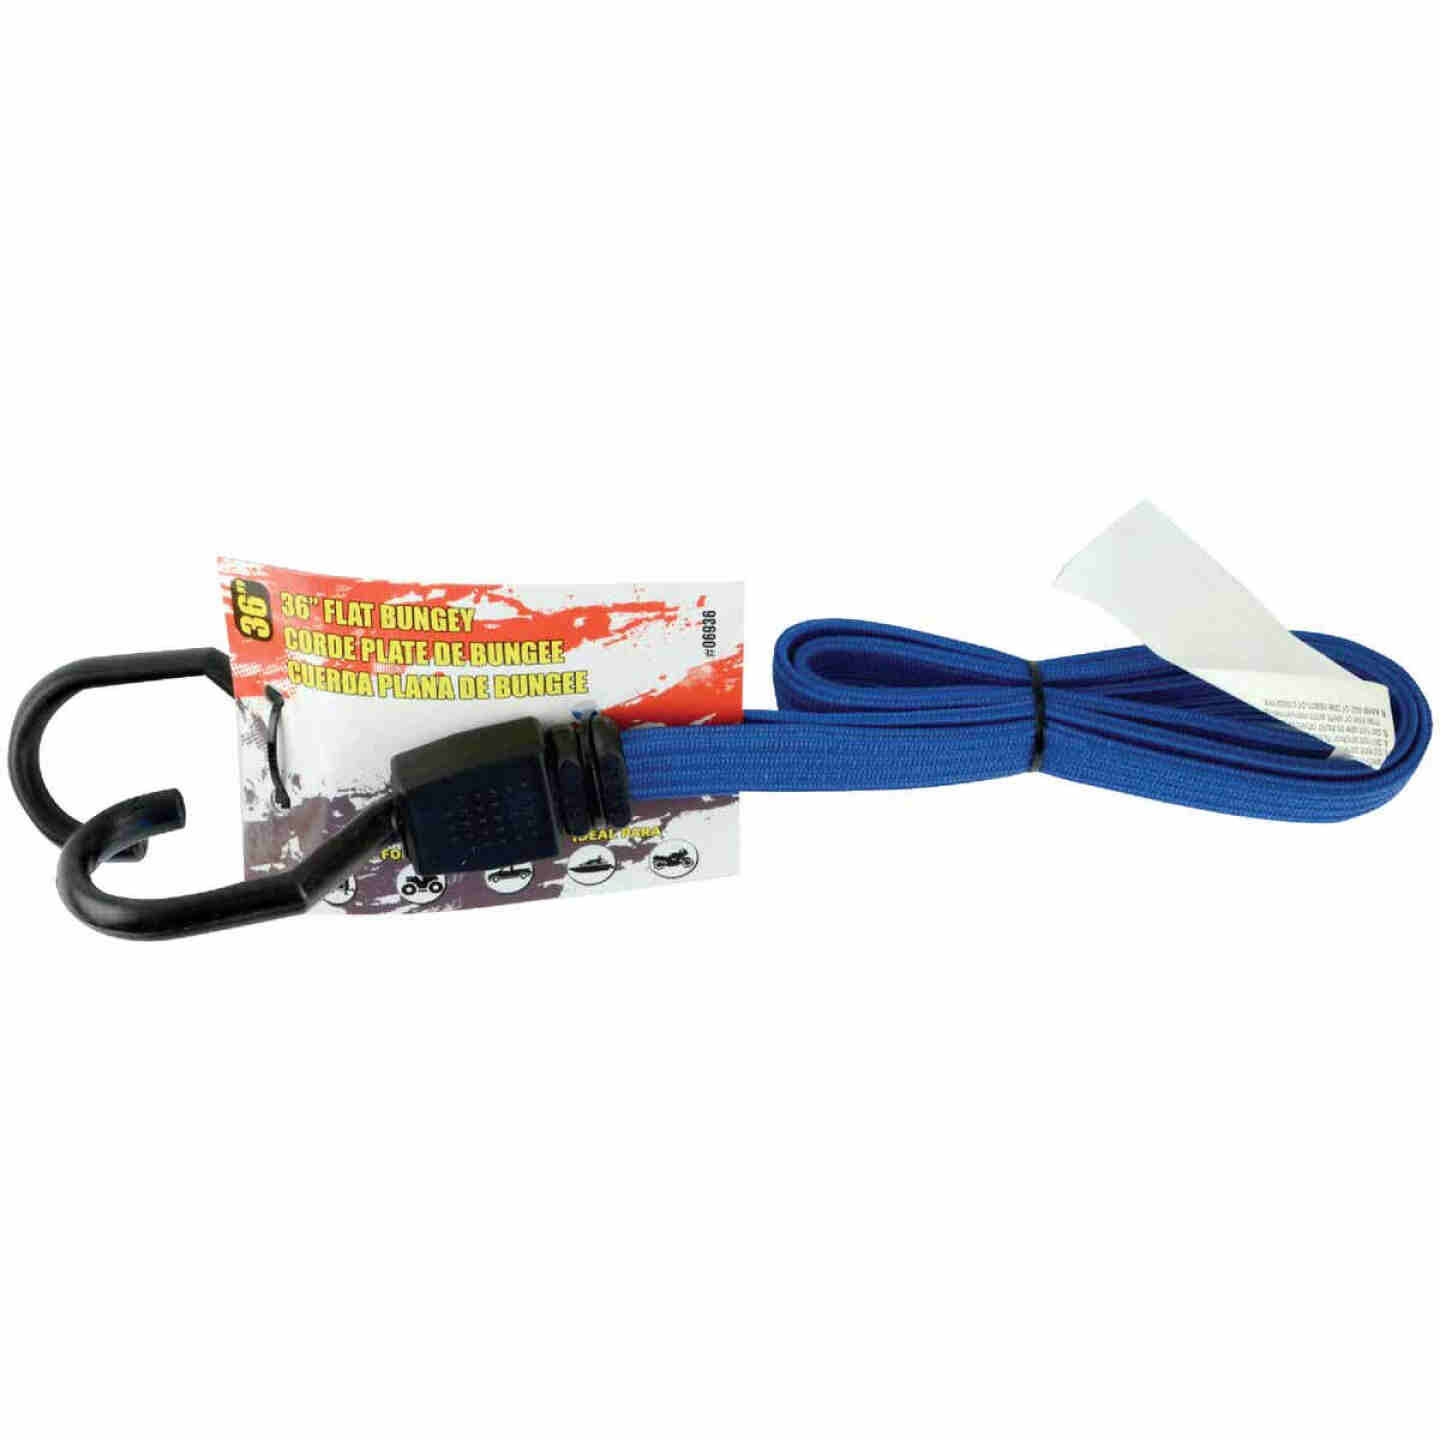 Erickson 3/4 In. x 36 In. Flat Bungee Cord, Blue Image 2